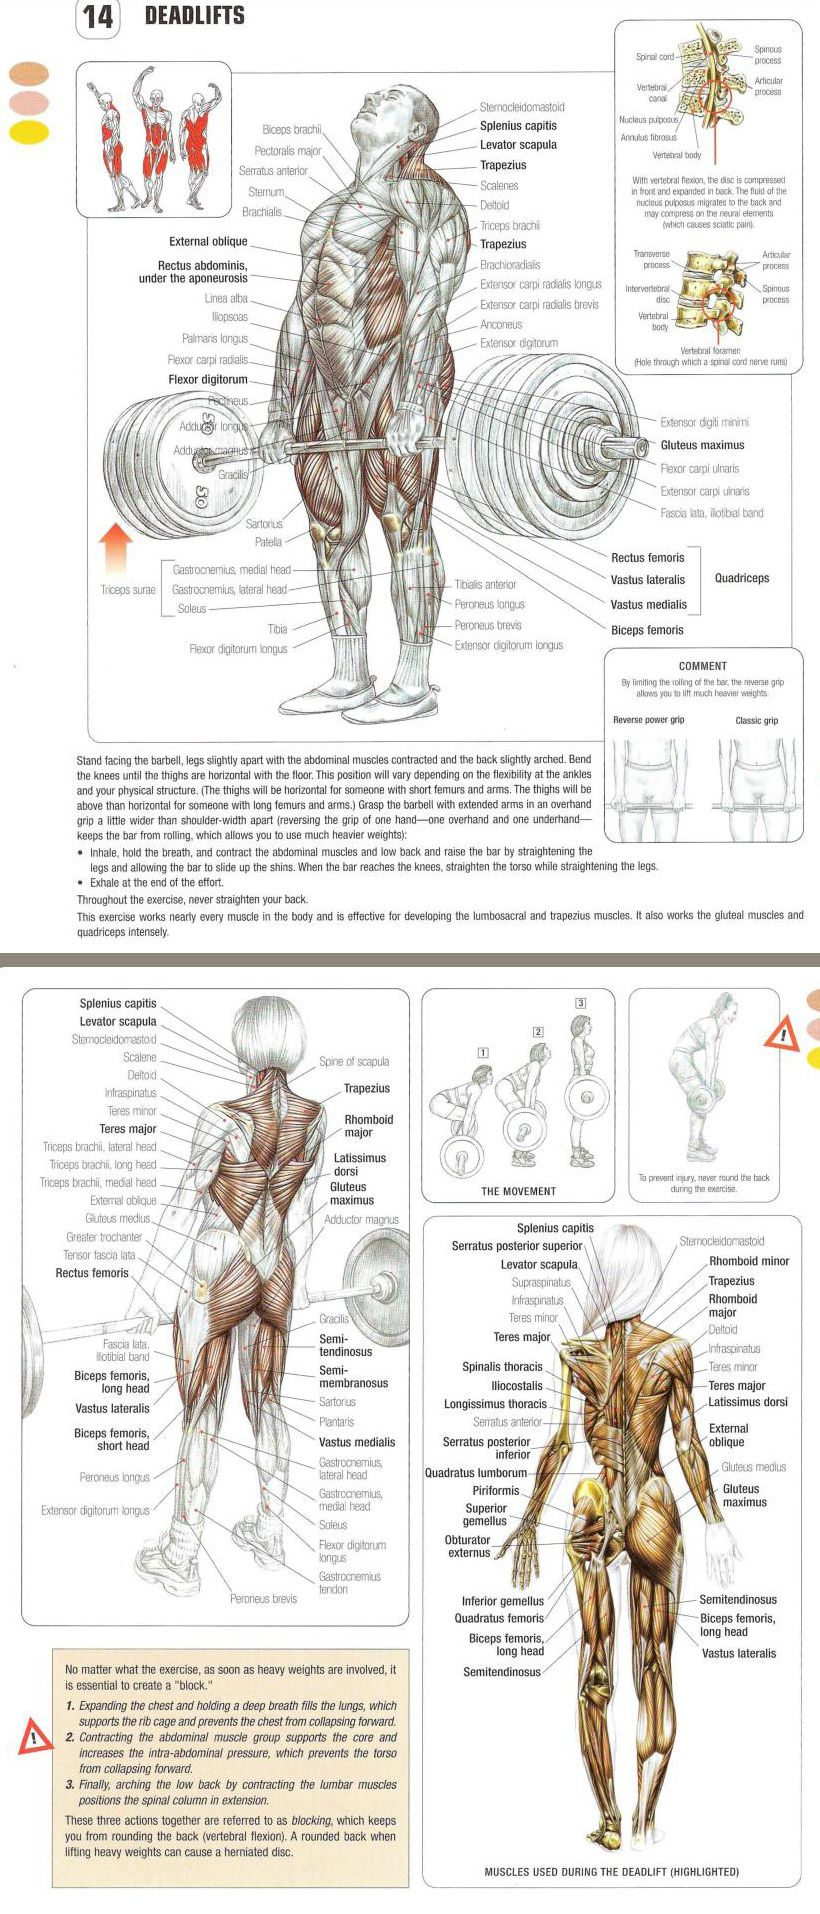 The Pullup Exercise Anatomy | Anatomy, Exercises and Workout